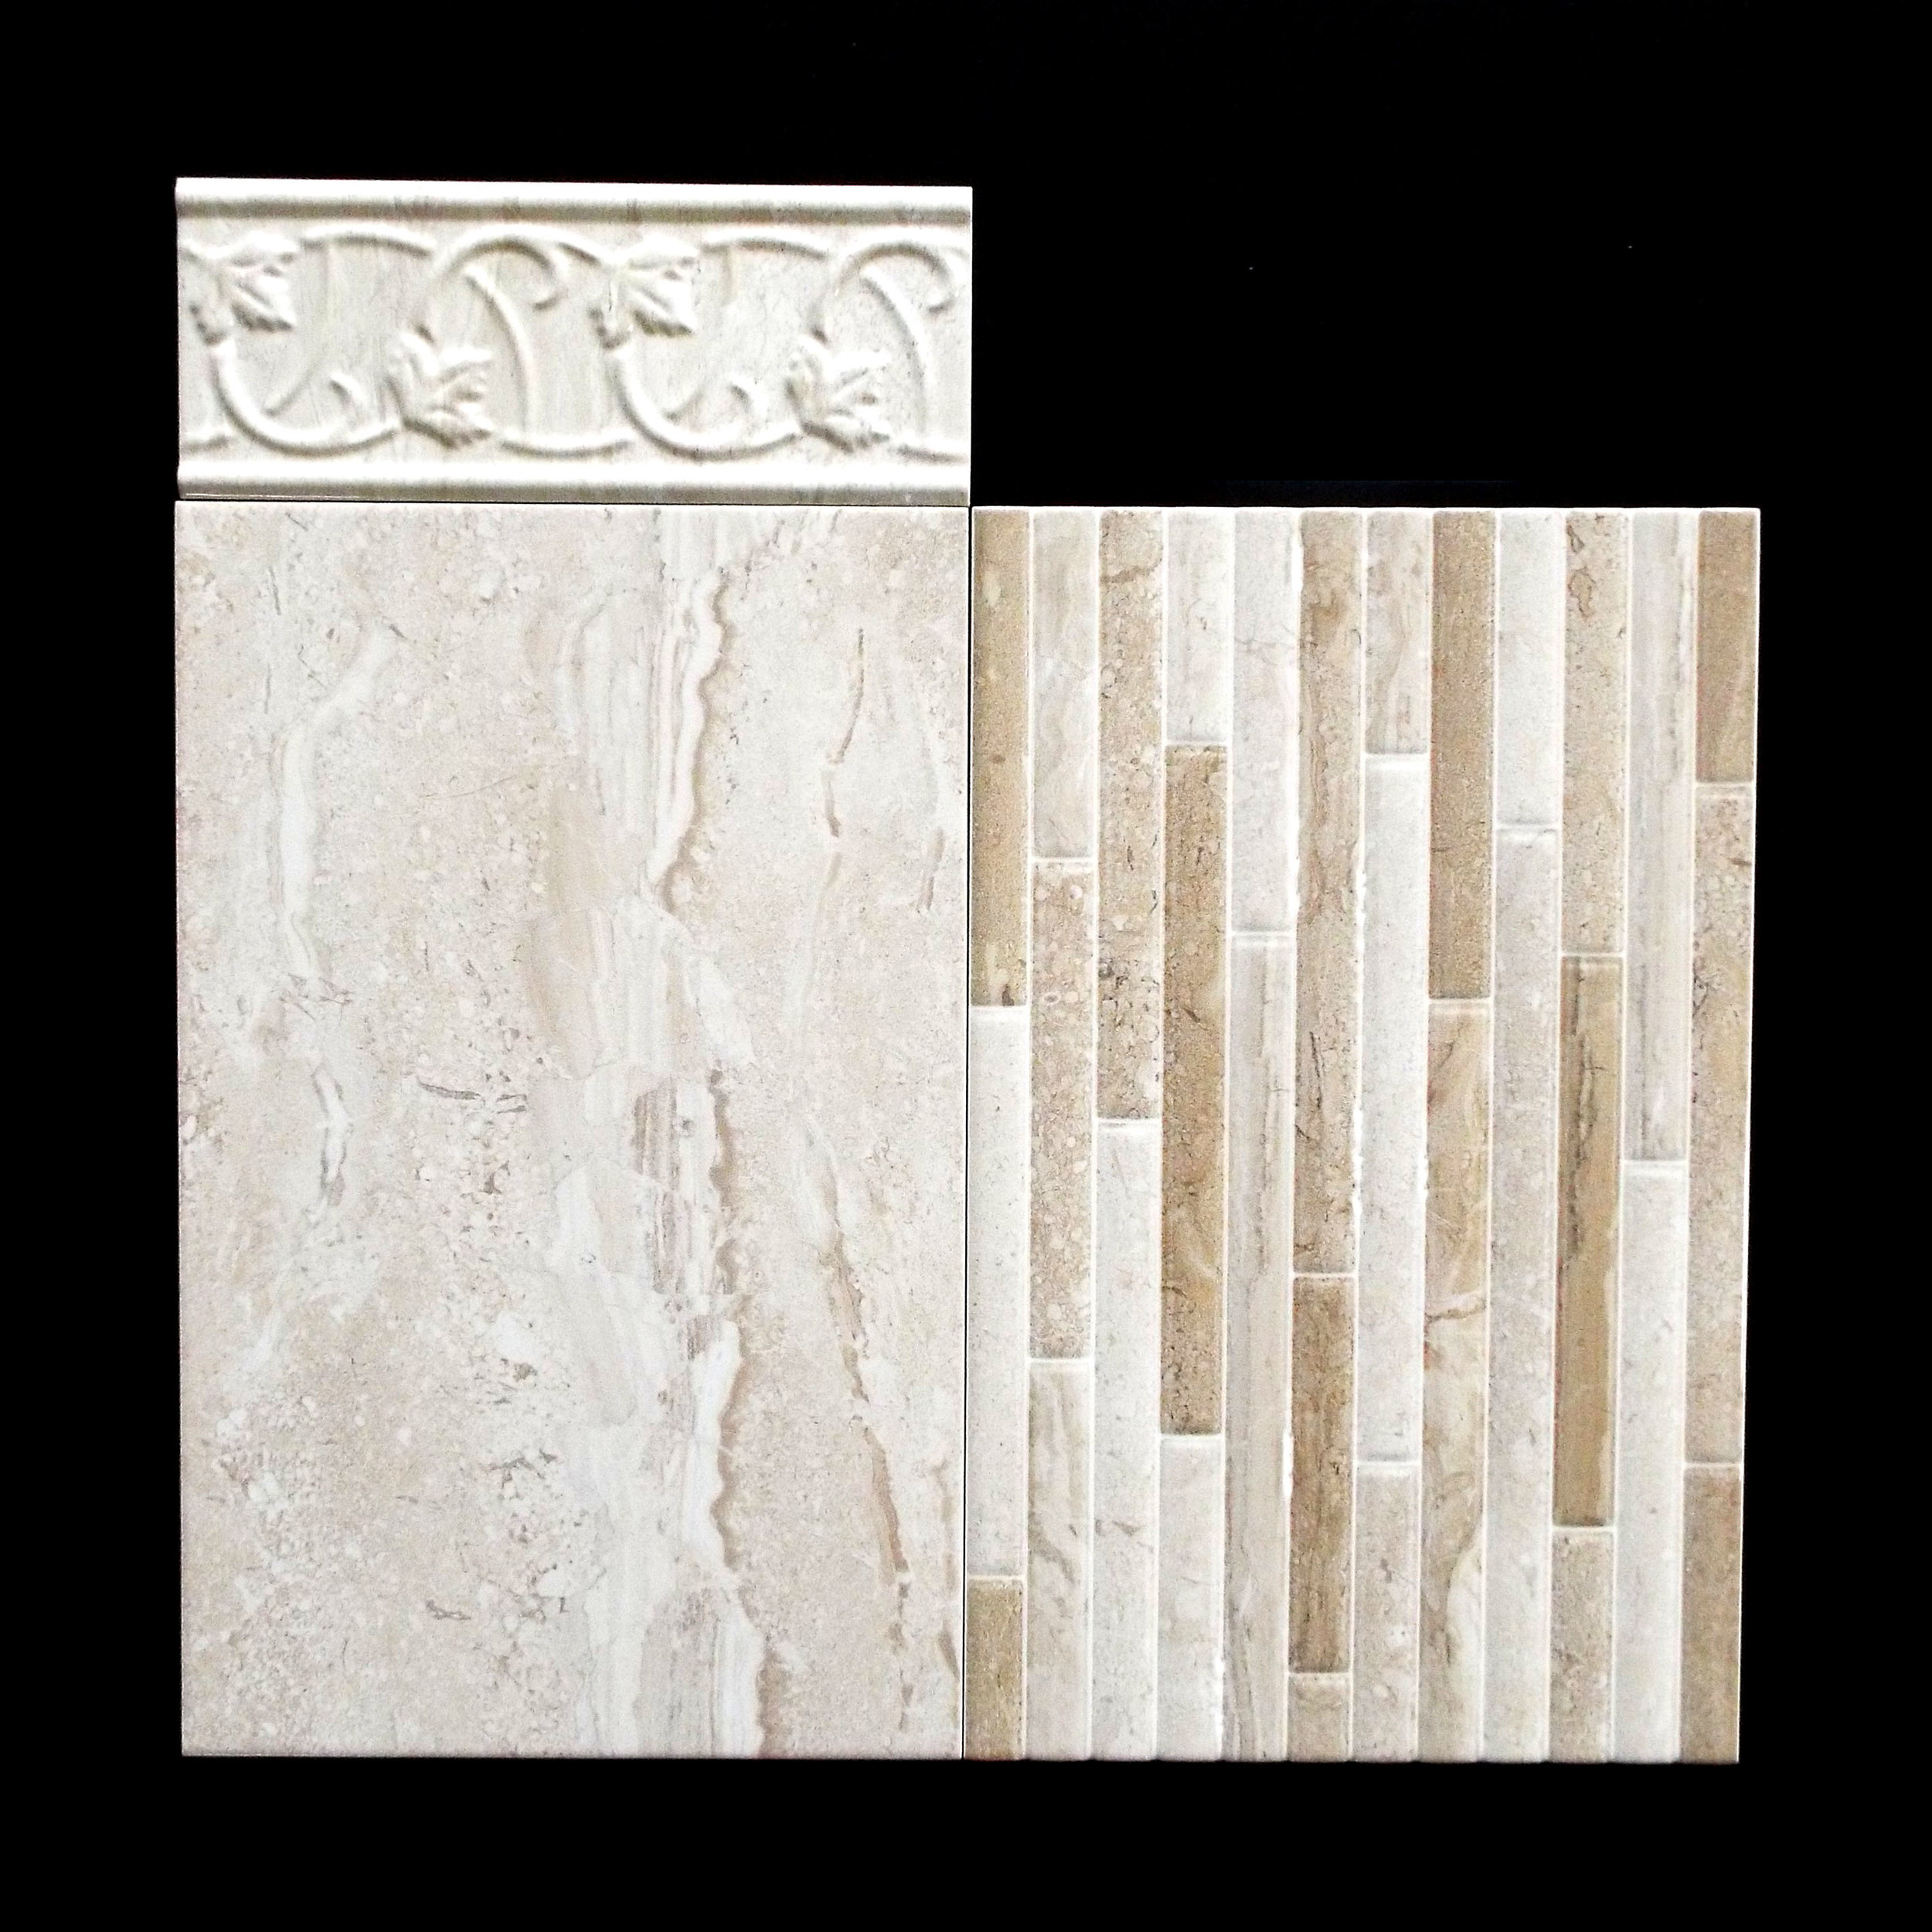 BEIGE WALL, DE & LT >  SEE DETAILS IN CERAMIC SECTION